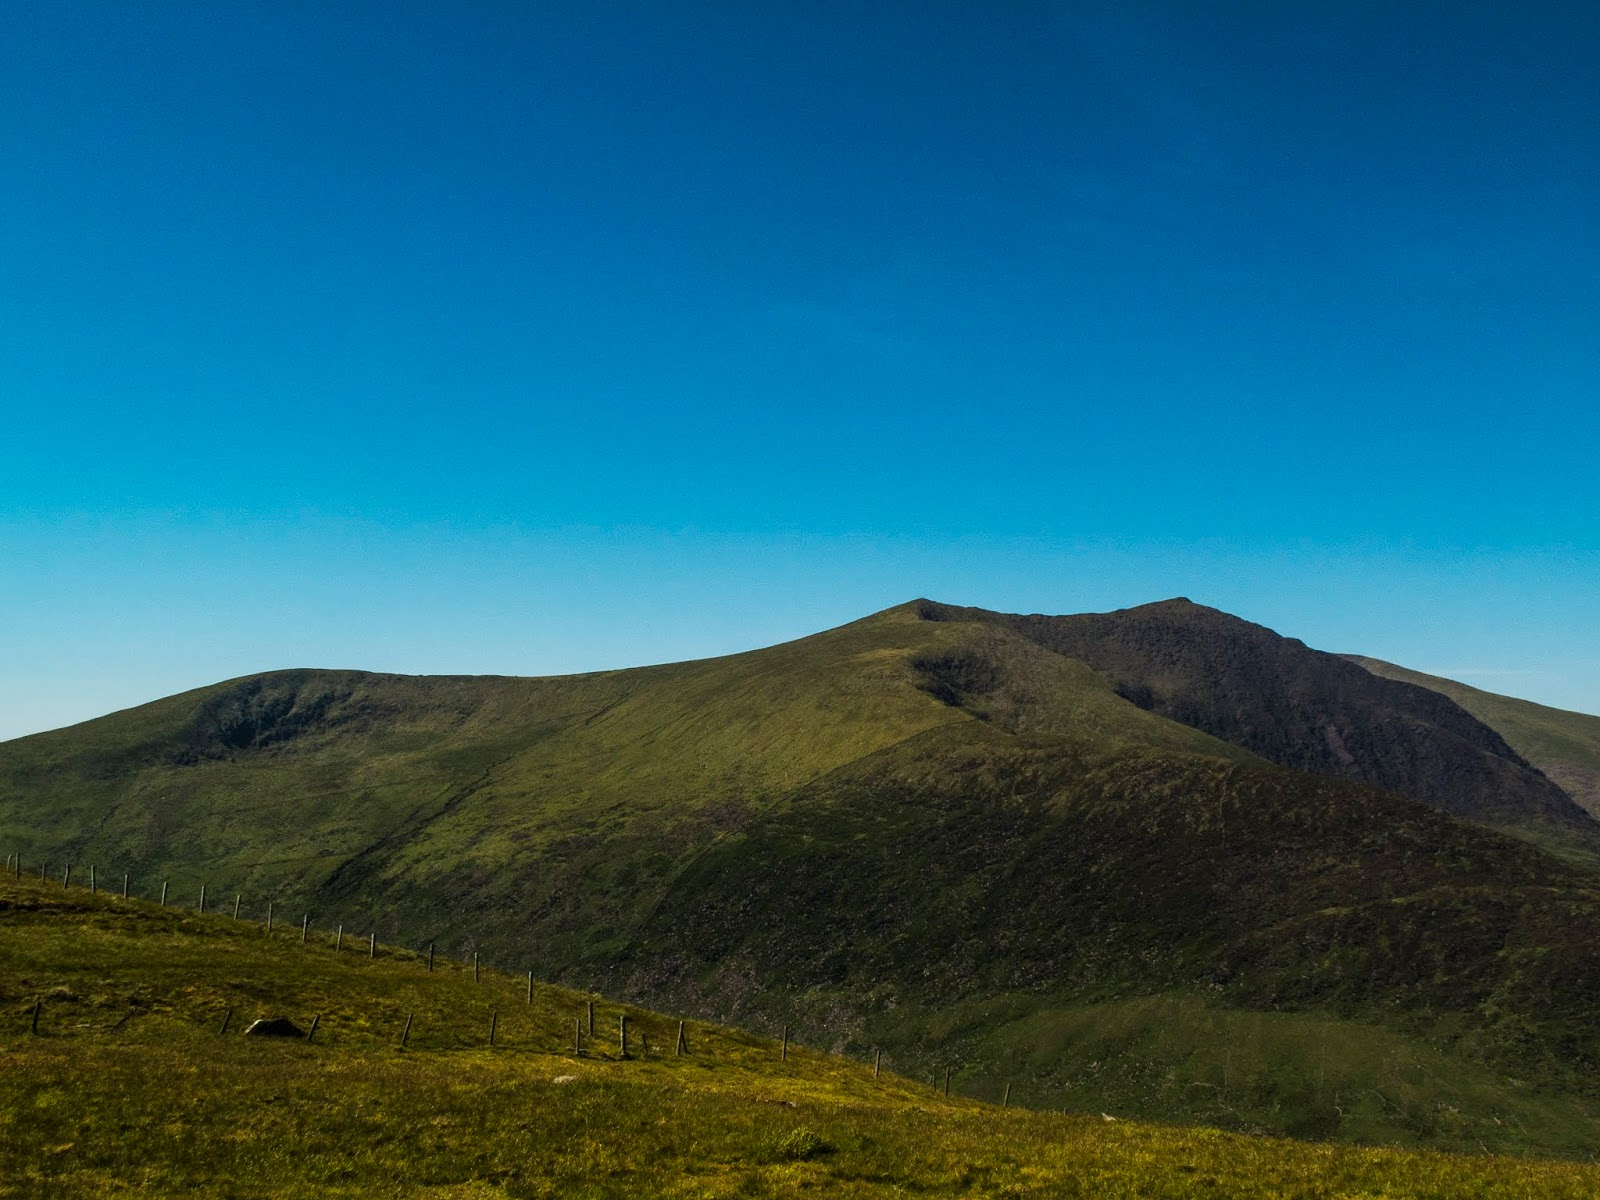 Mountain side views from Conor Pass in the Dingle Peninsula on a sunny day with blue skies.